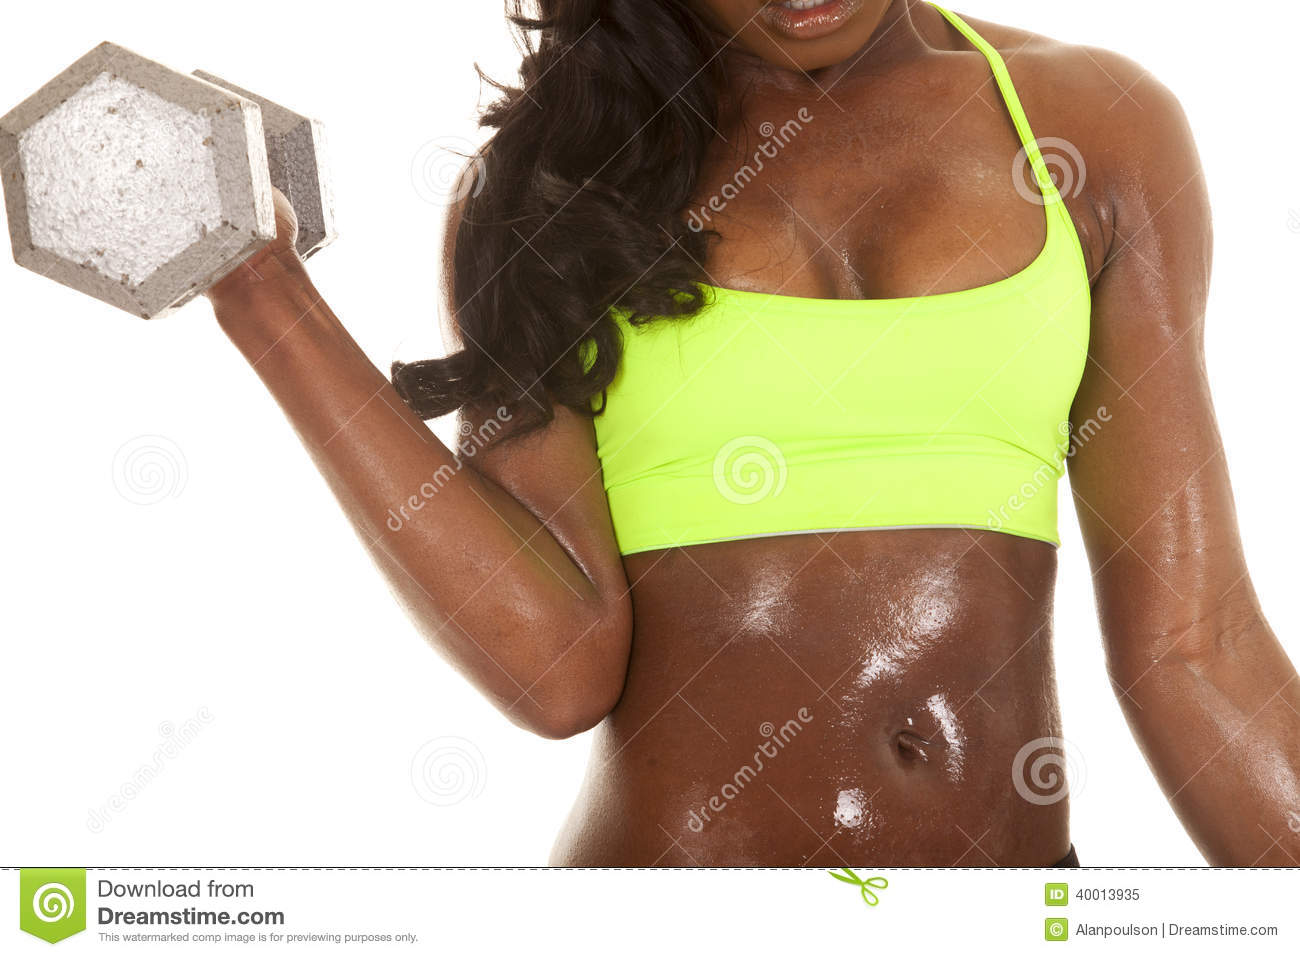 Airport Graphics Weight Clipart Vector Design Fileaircraft Parts Engjpg Wikimedia Commons African American Woman Fitness Green Body Front Graphic Black And White Runway